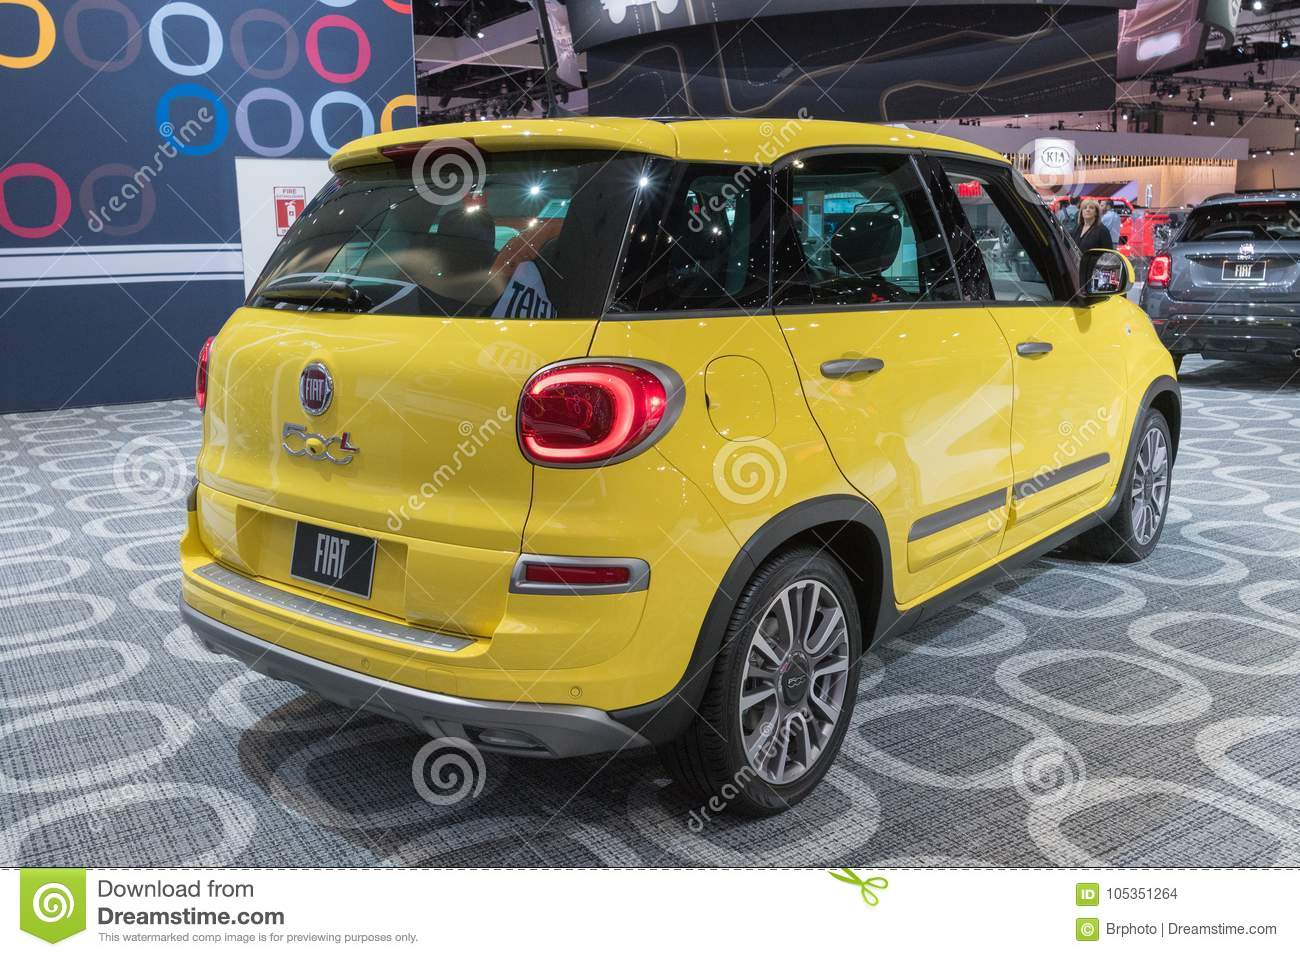 Fiat 500l On Display During La Auto Show Editorial Stock Image Image Of Automotive Drive 105351264